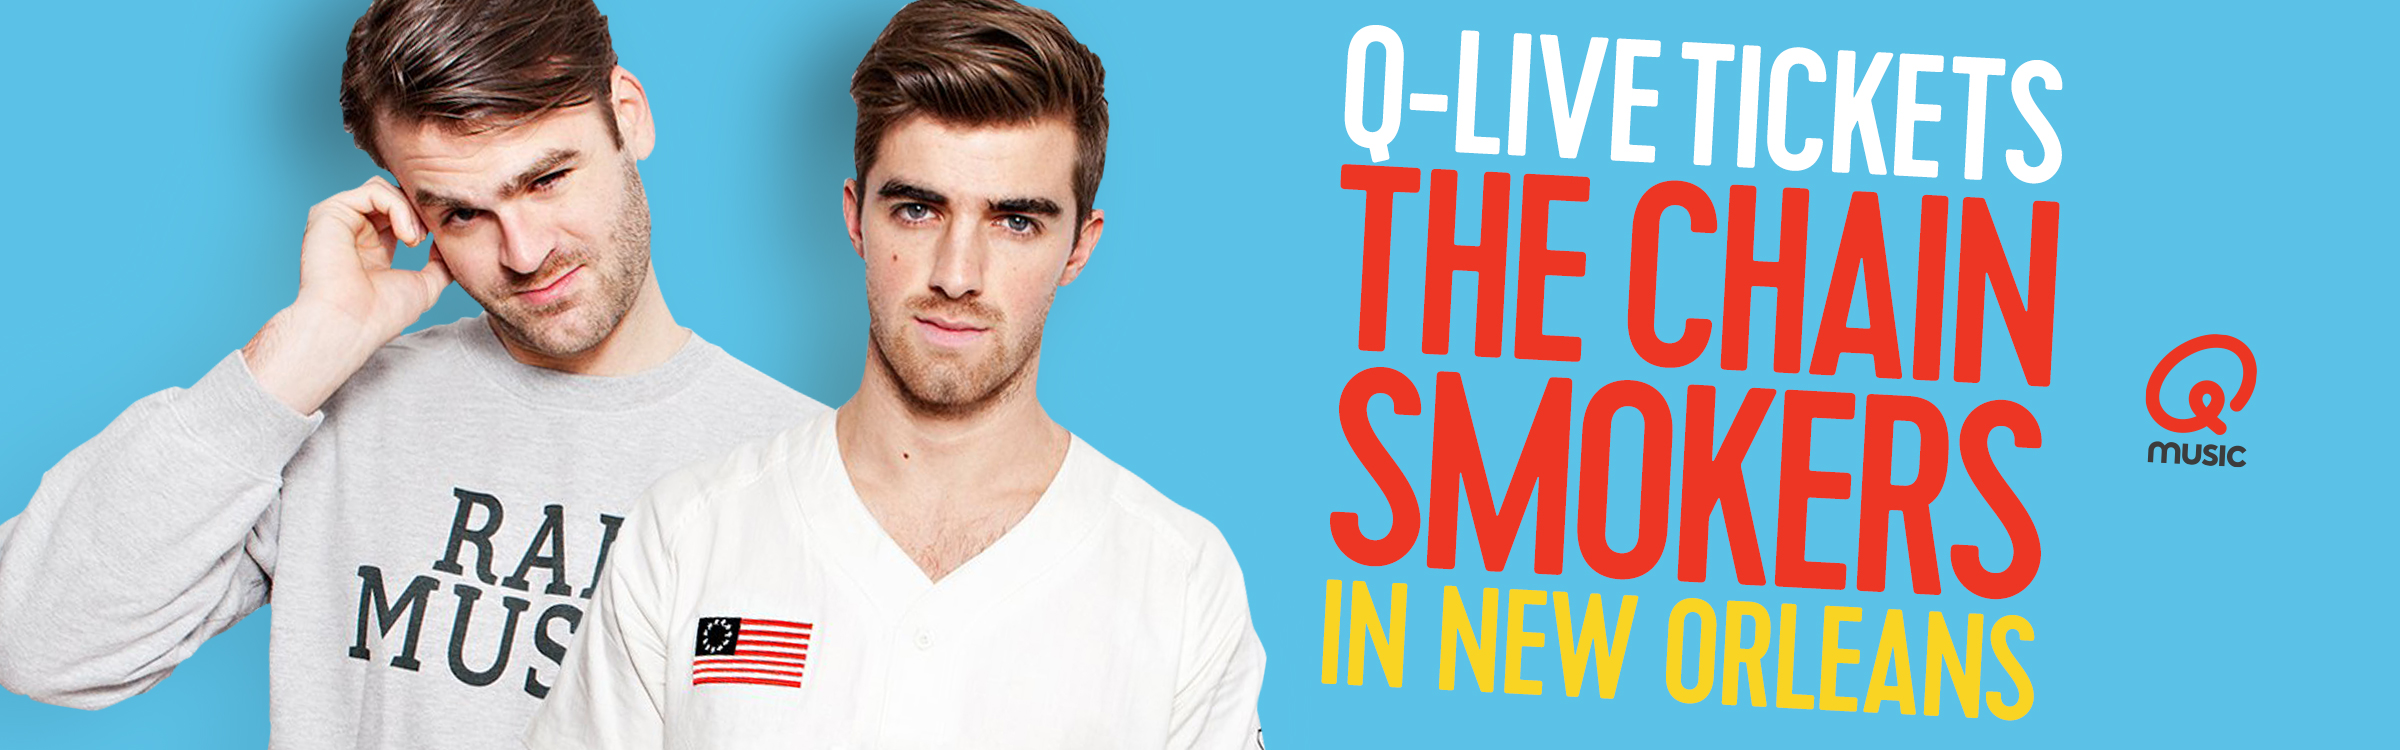 Qmusic actionheader chainsmokers2